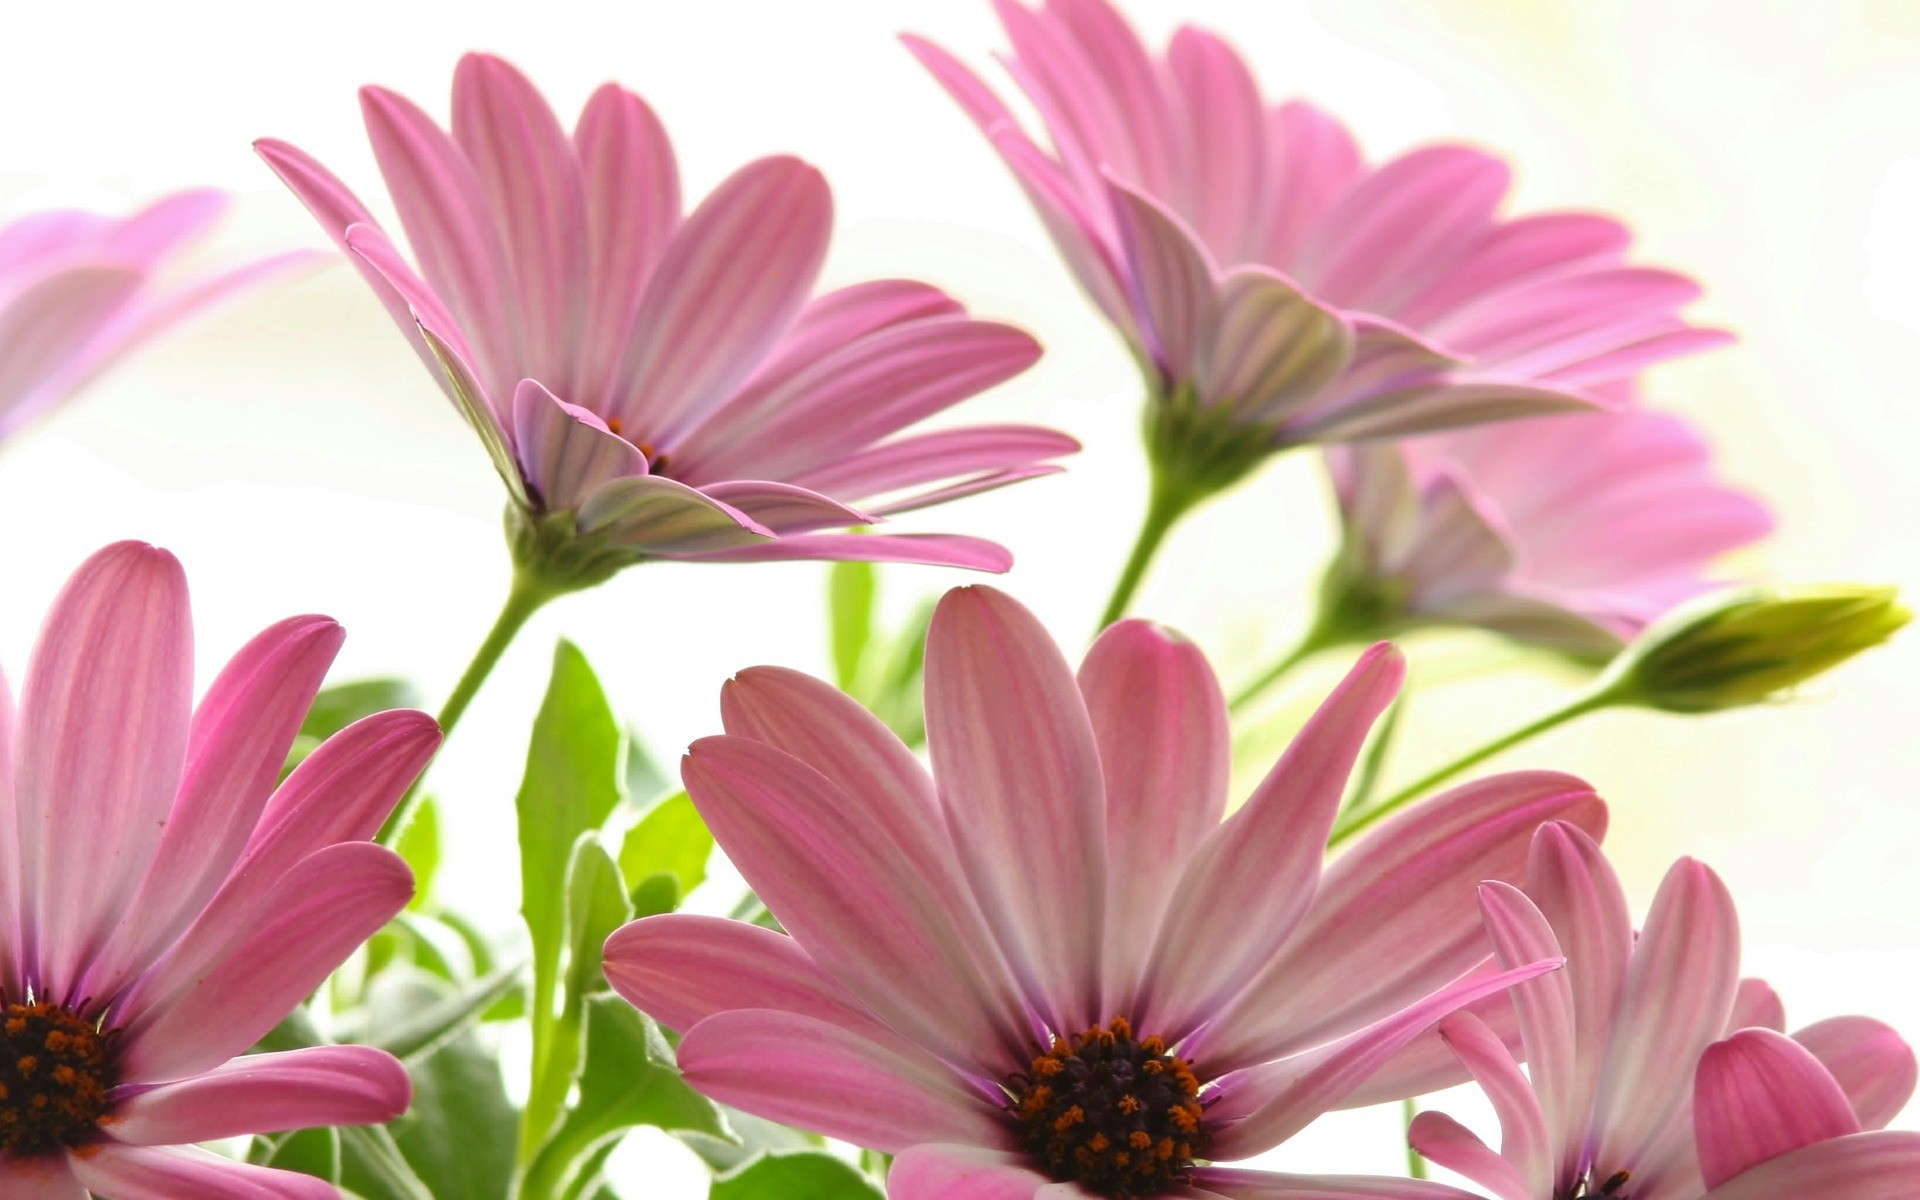 Res: 1920x1200, Pink Daisies Wallpaper Flowers Nature